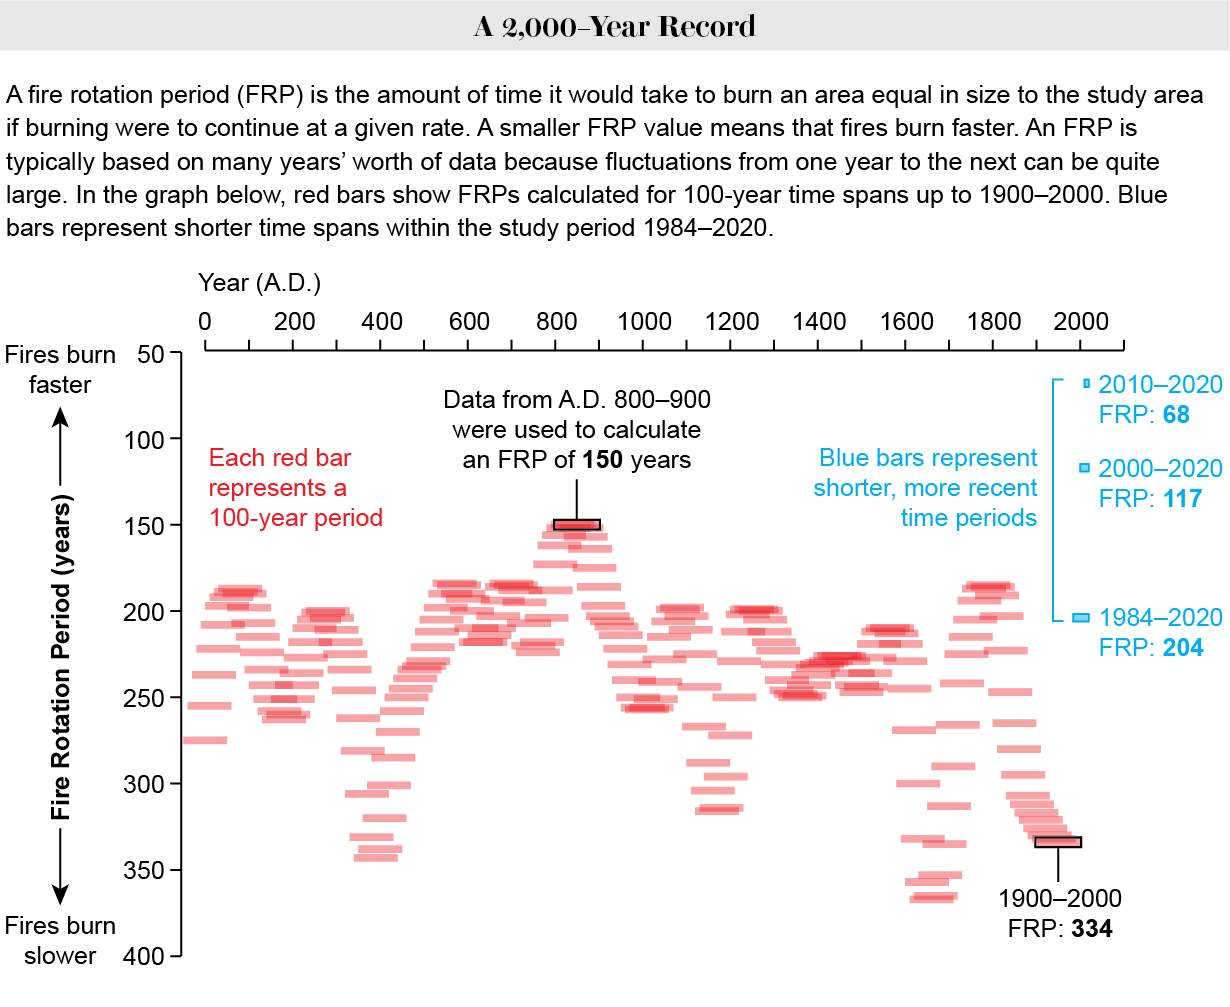 Graph shows fire rotation periods for 100-year intervals between 50 B.C. and 2000, plus FRPs based on data from 1984 to 2020.